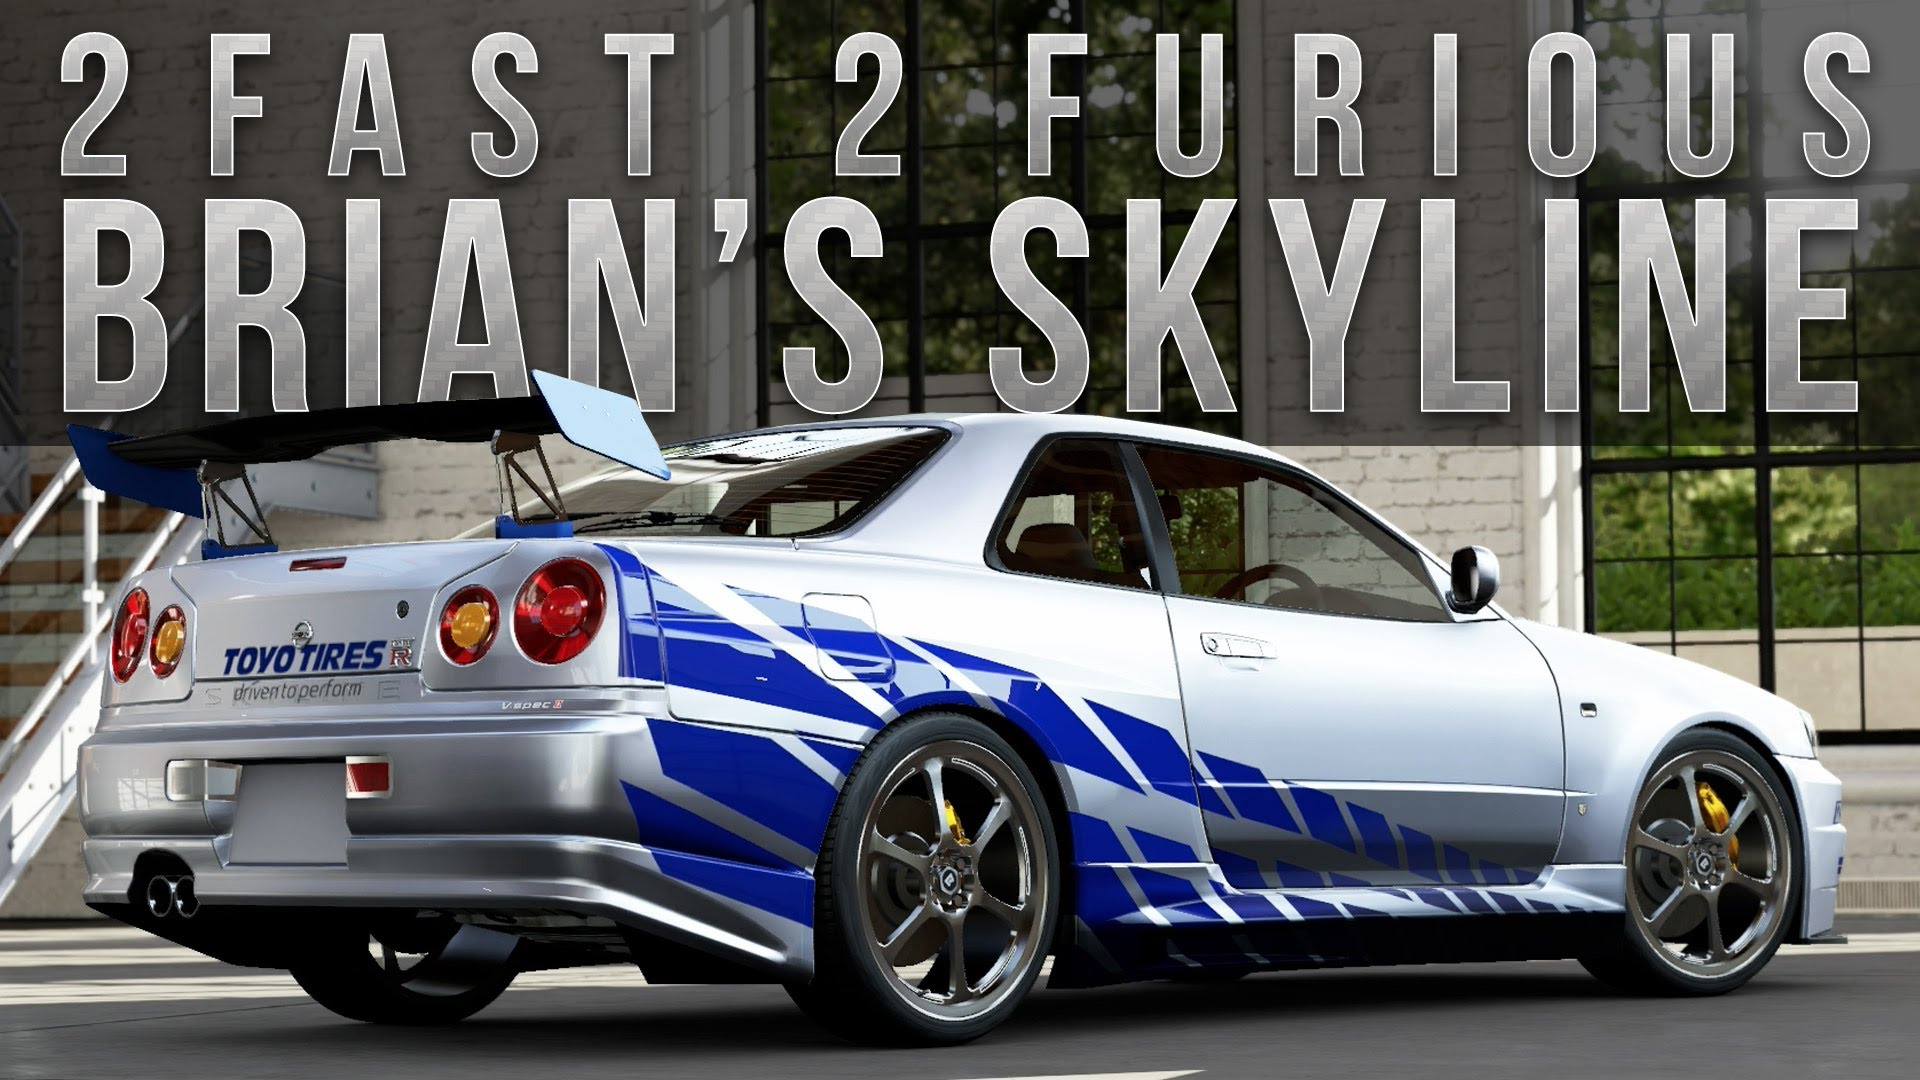 The 10 Hottest Cars From the Fast and Furious Movies ...